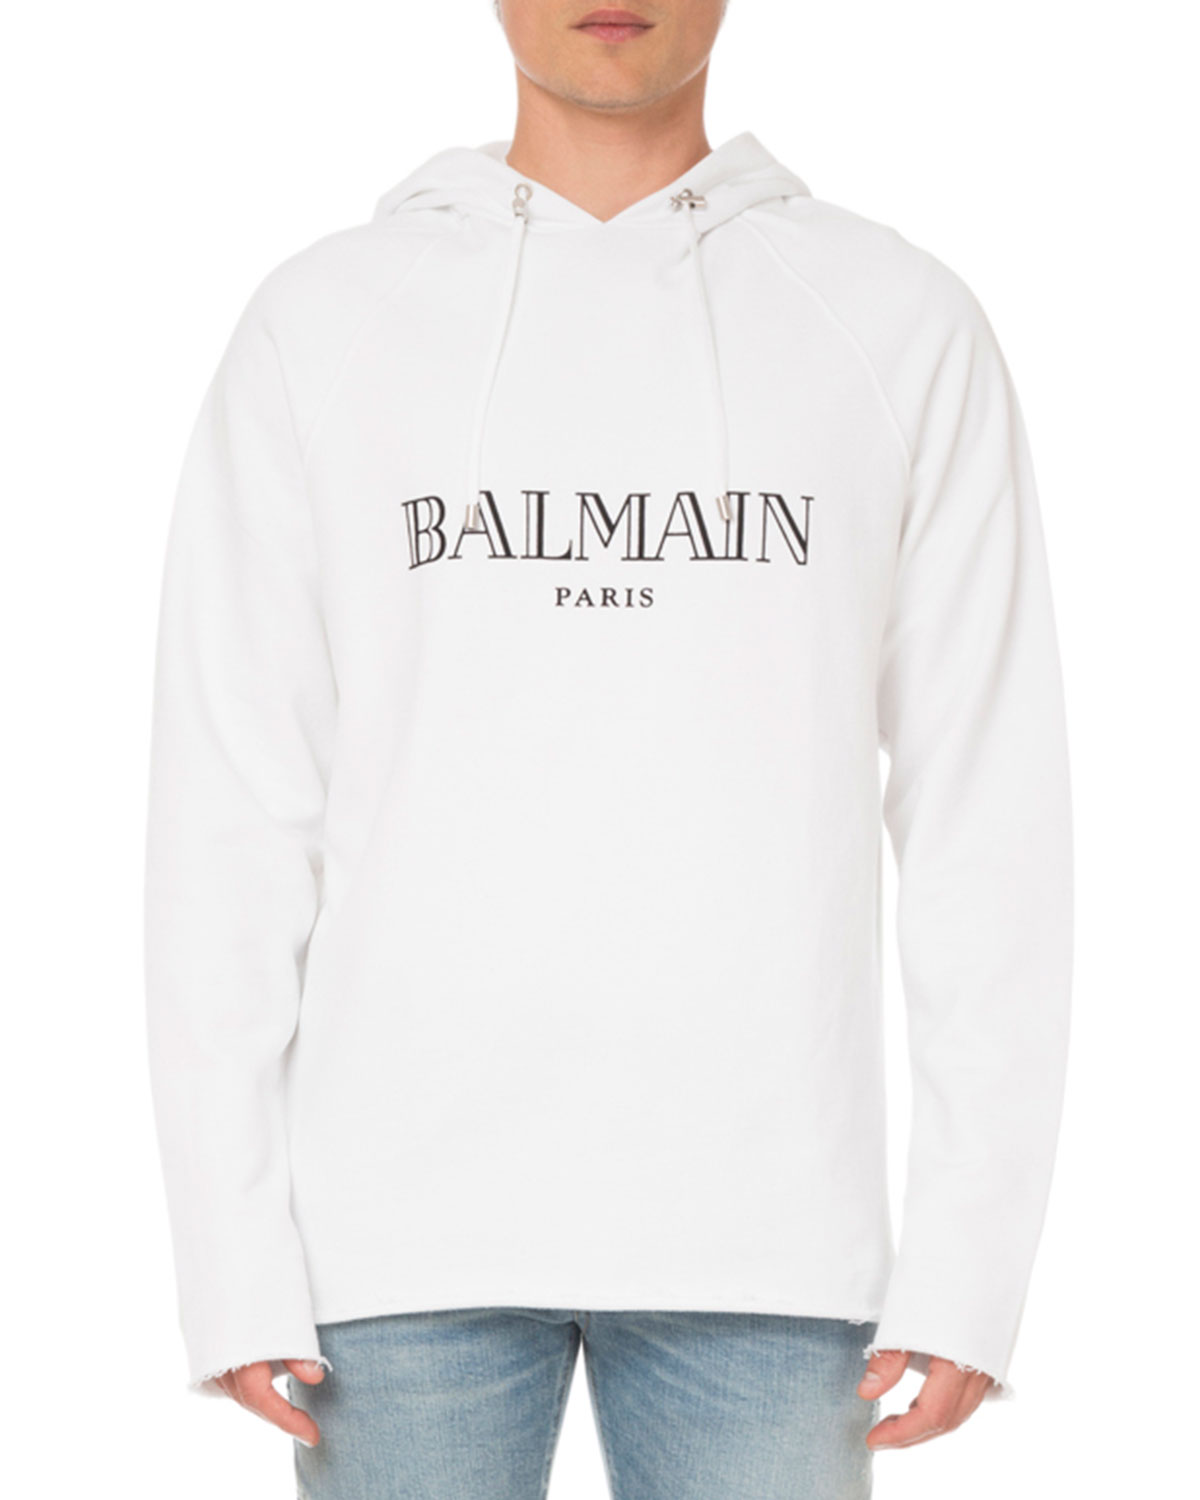 Balmain Tops MEN'S LOGO GRAPHIC PULLOVER HOODIE